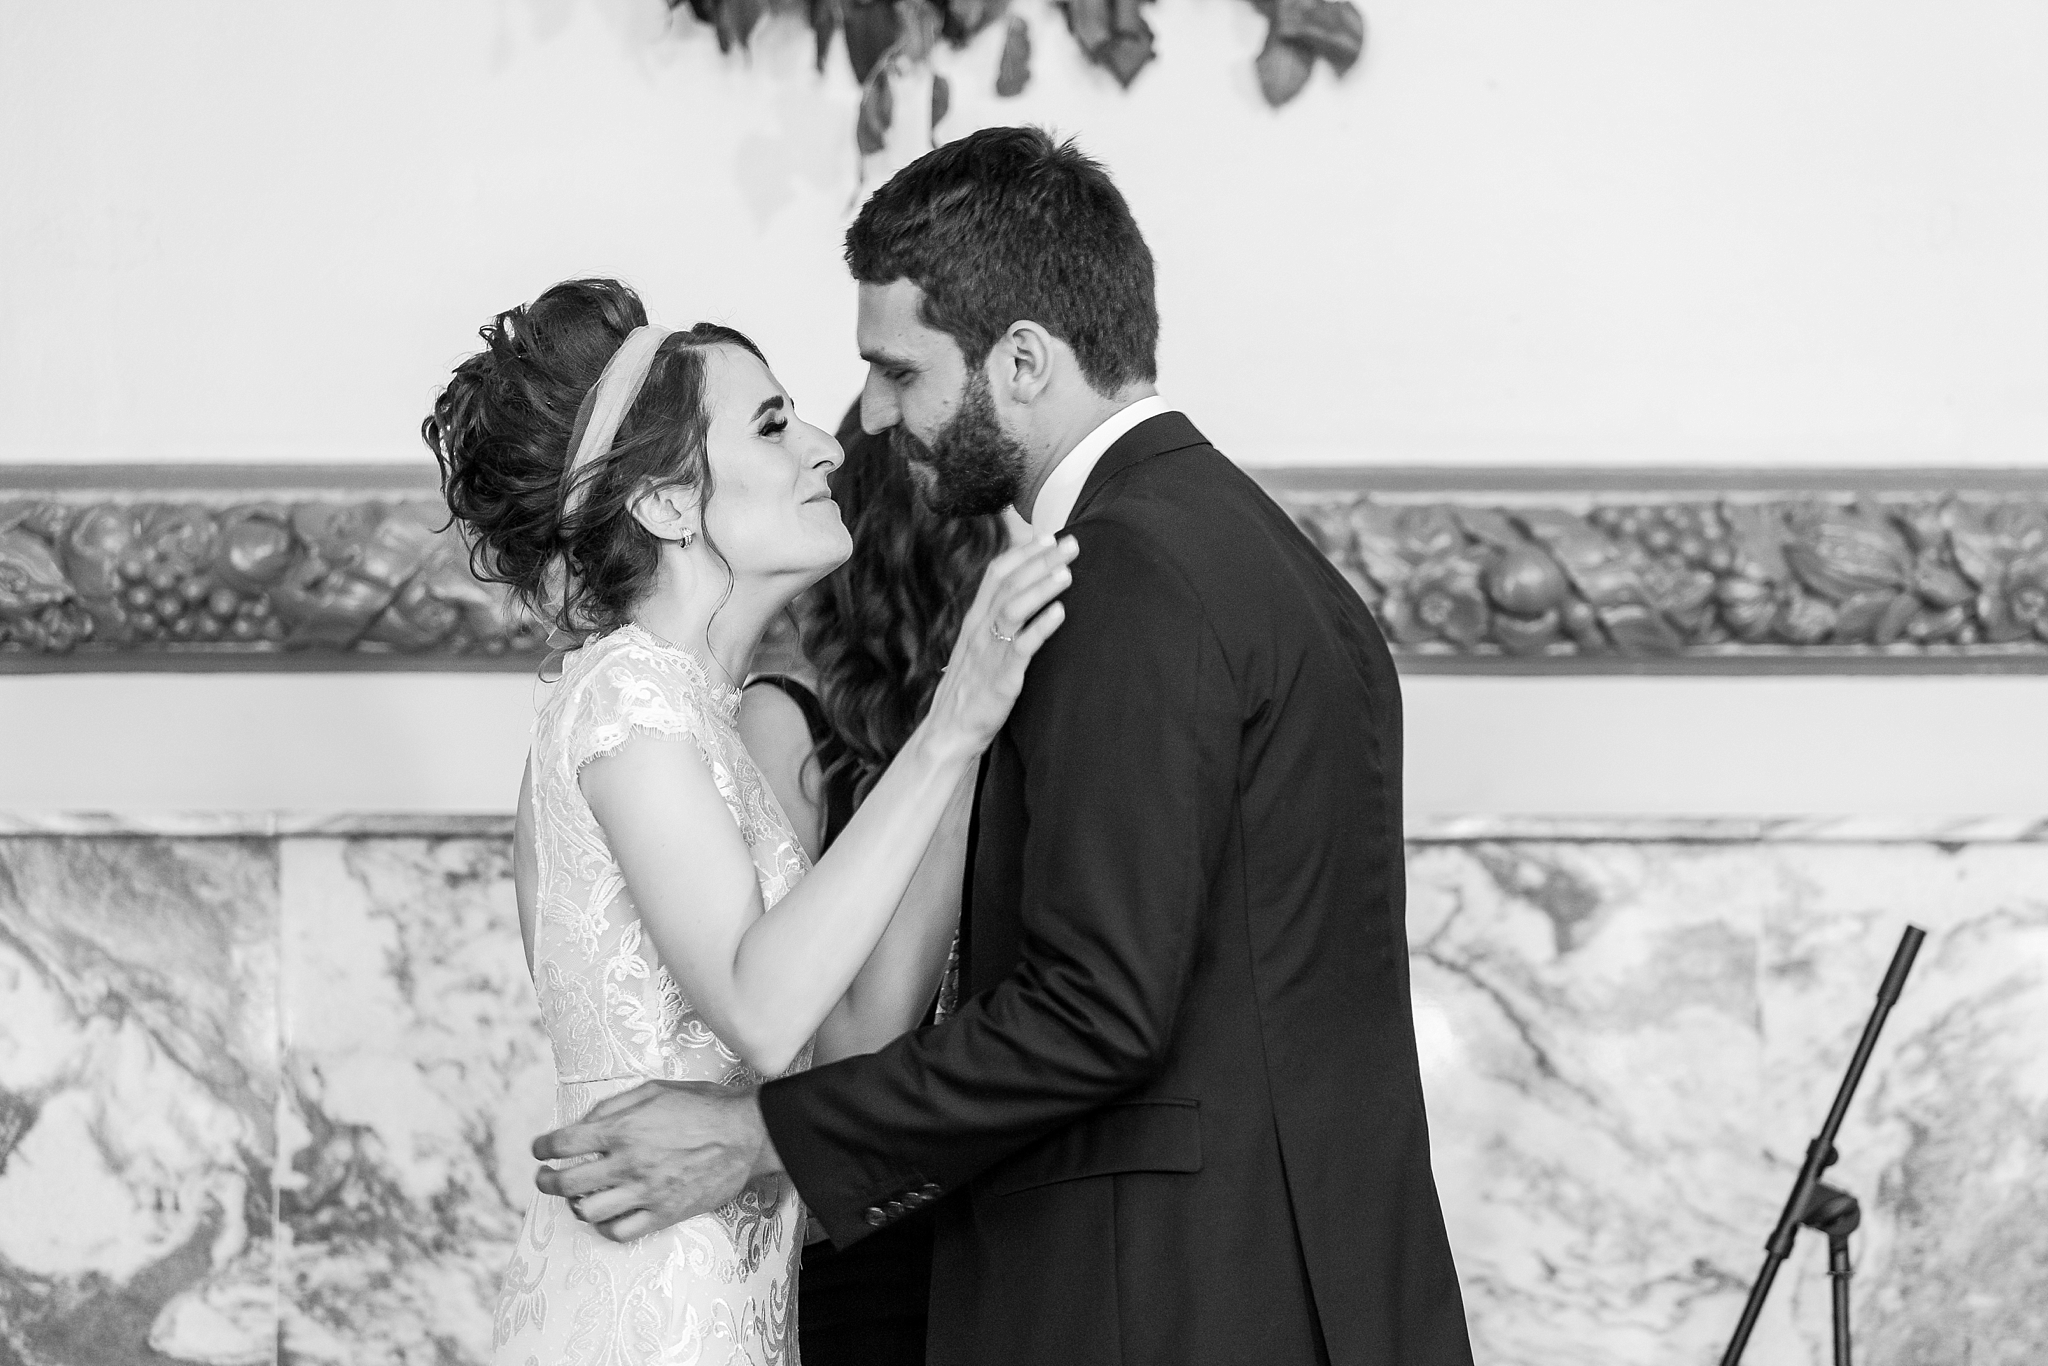 alternative-joyful-wedding-photos-at-the-belle-isle-casino-in-detroit-michigan-by-courtney-carolyn-photography_0040.jpg